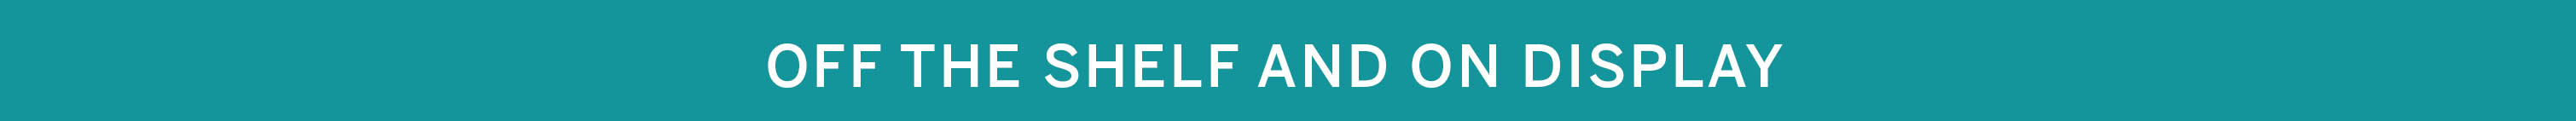 thin, teal banner with the title of the series in white letters: off the shelf and on display